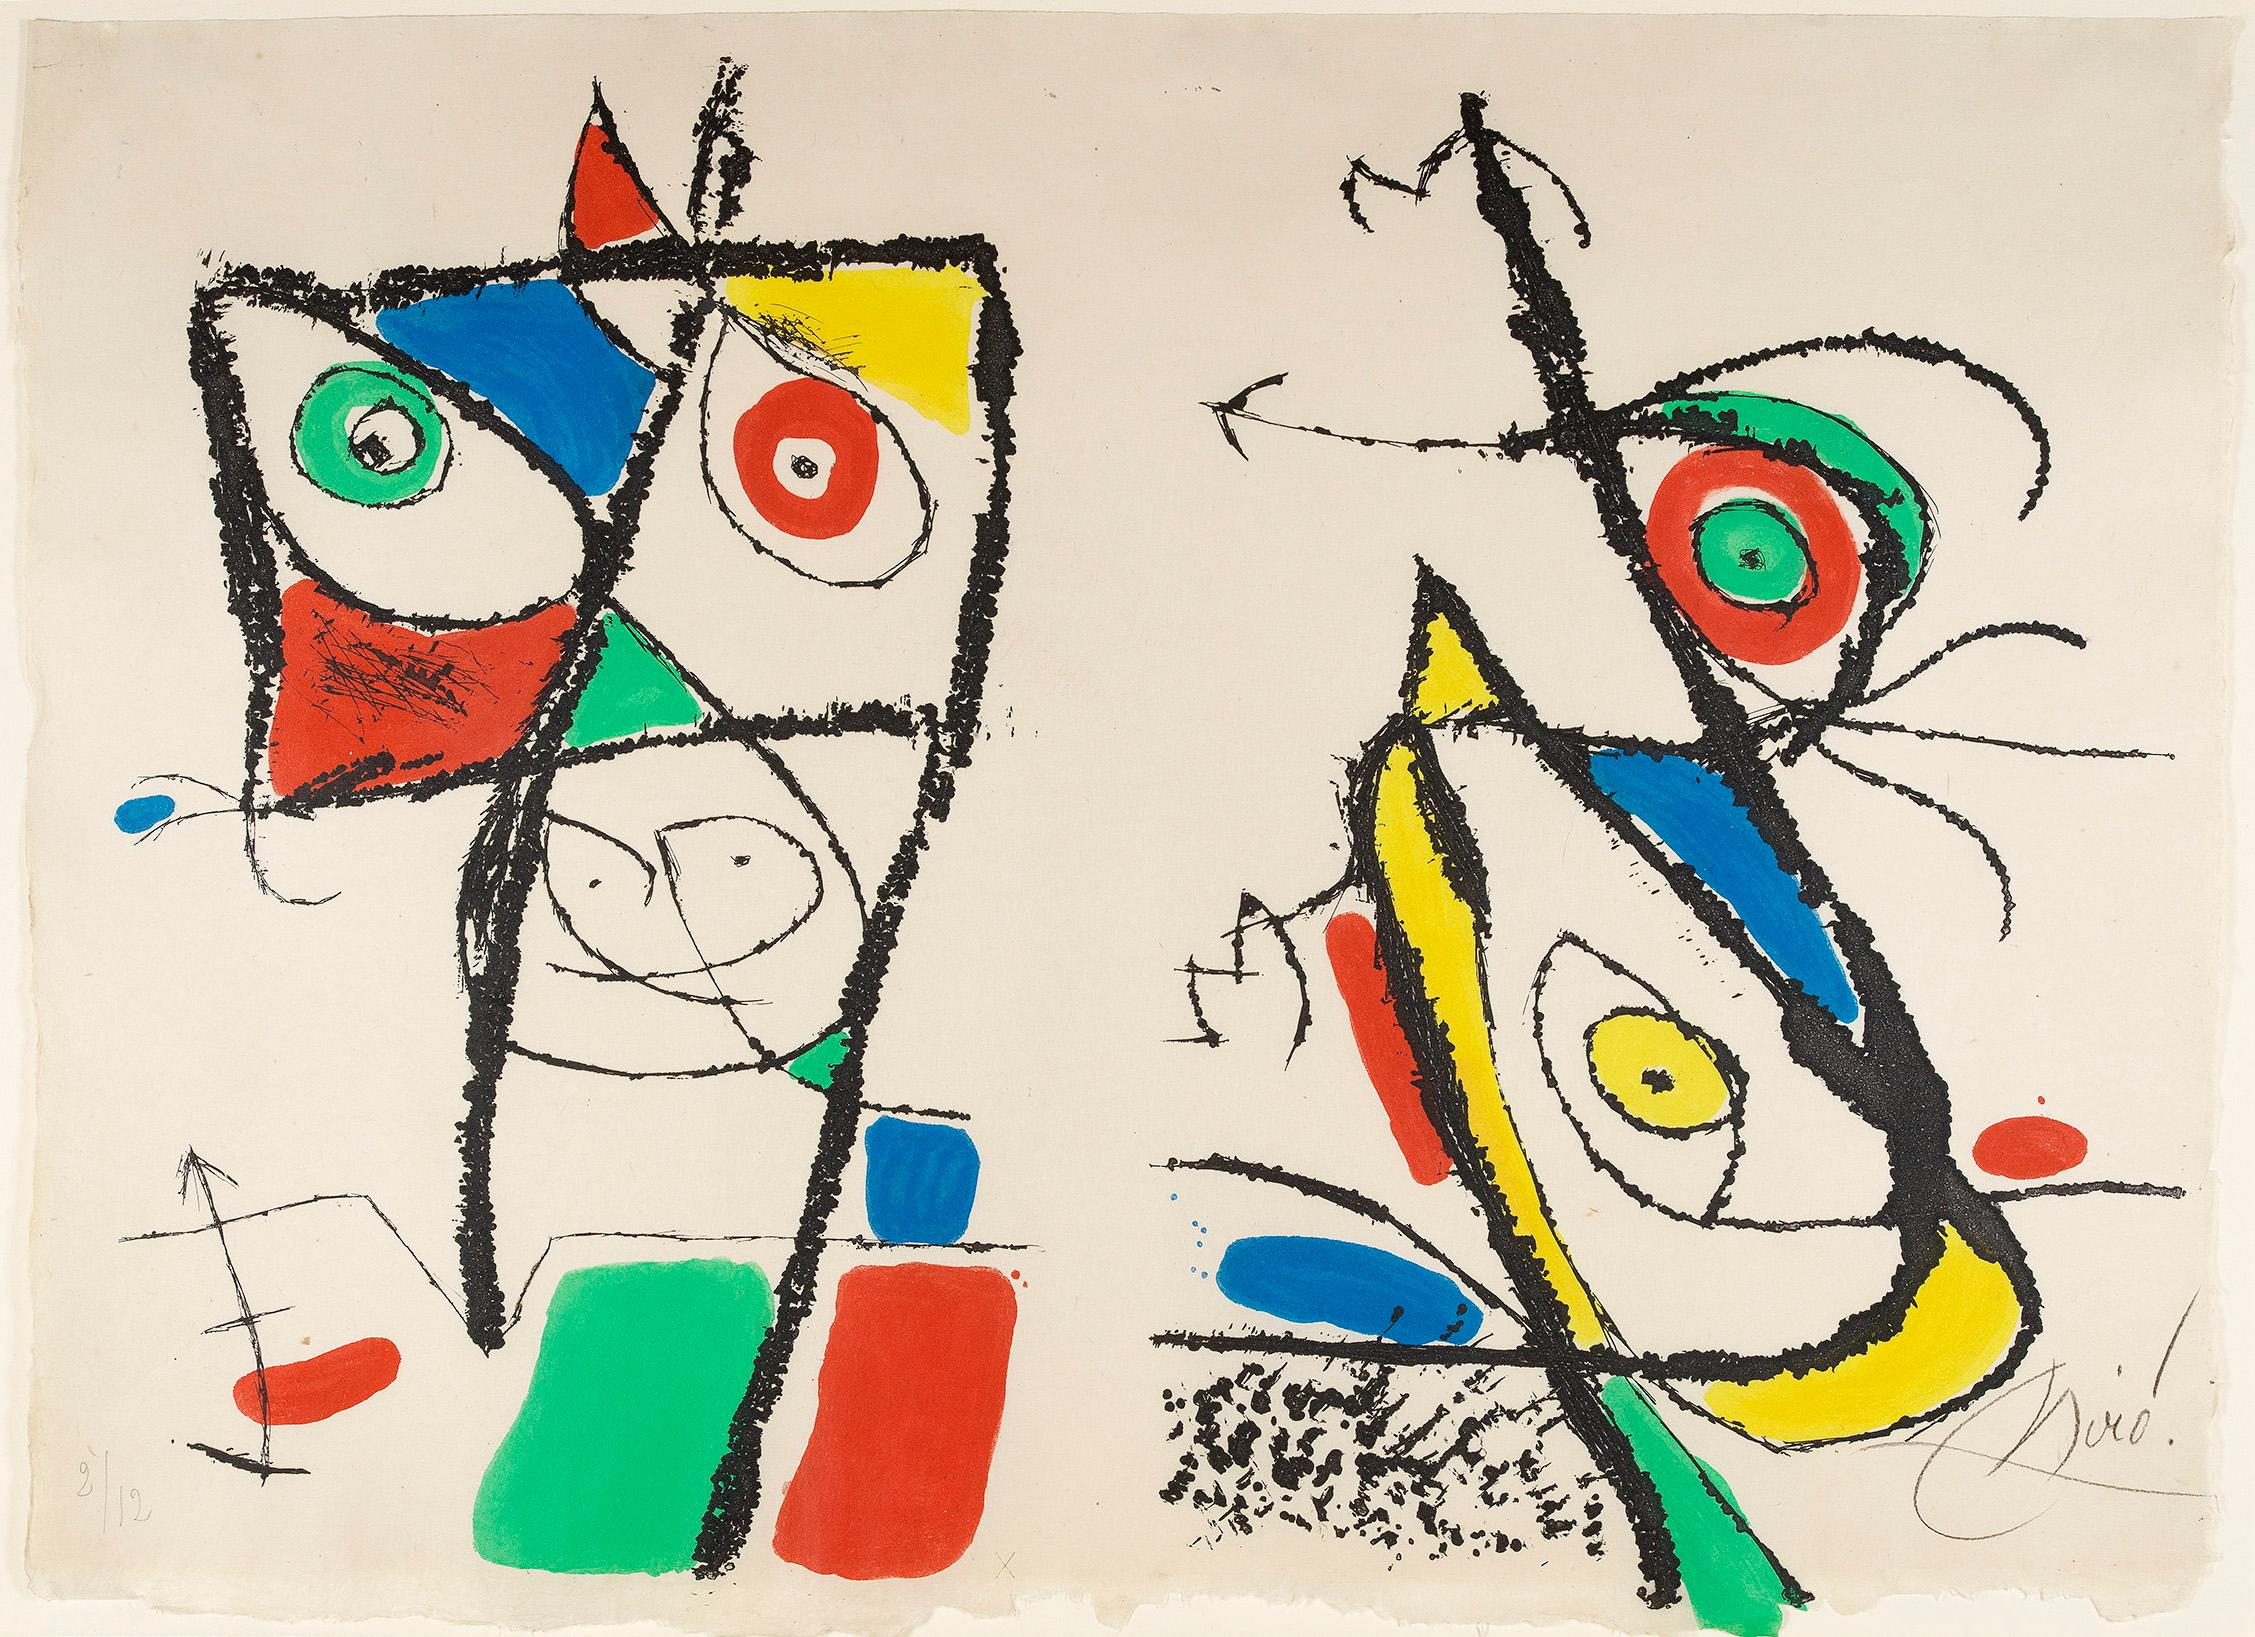 Le Courtisan Grotesque: Plate X - Joan Miró, Etching, Aquatint, Abstract prints